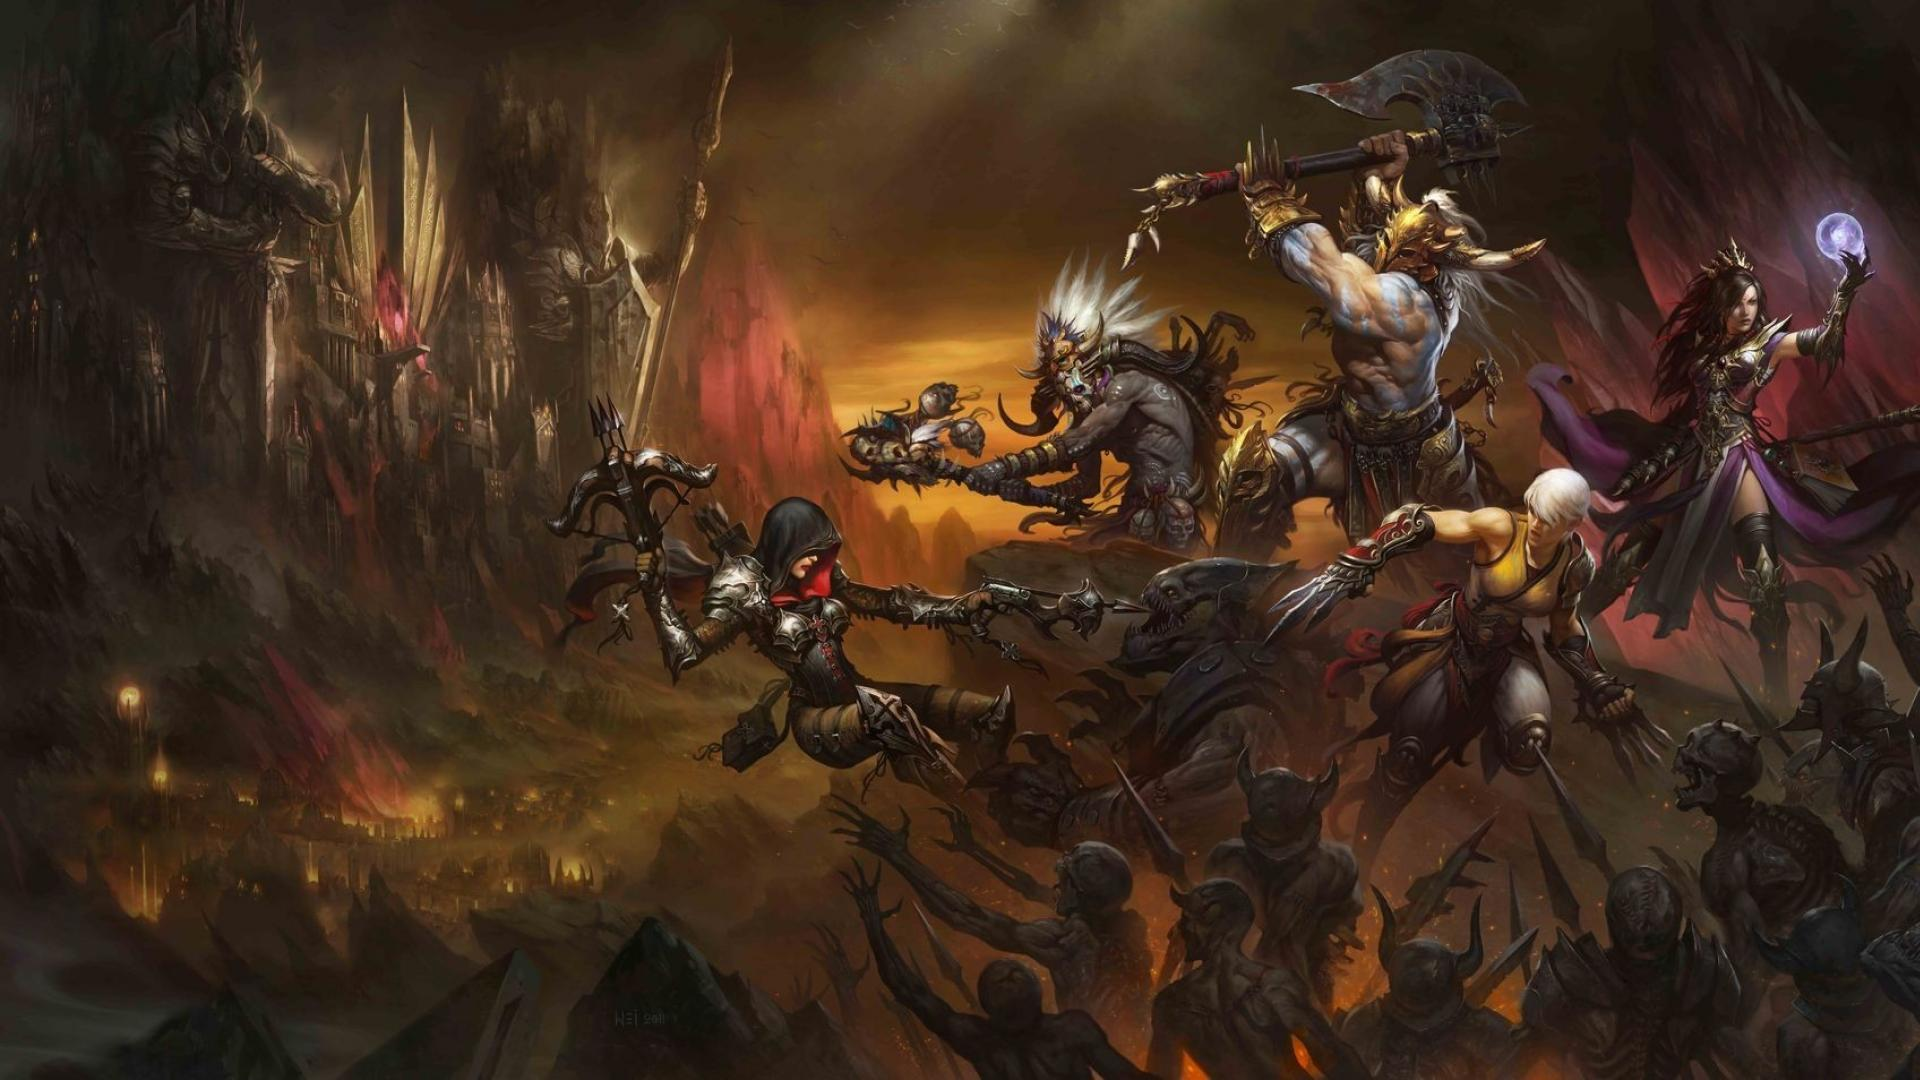 Diablo 3 Demon Hunter Wallpaper 1920x1080